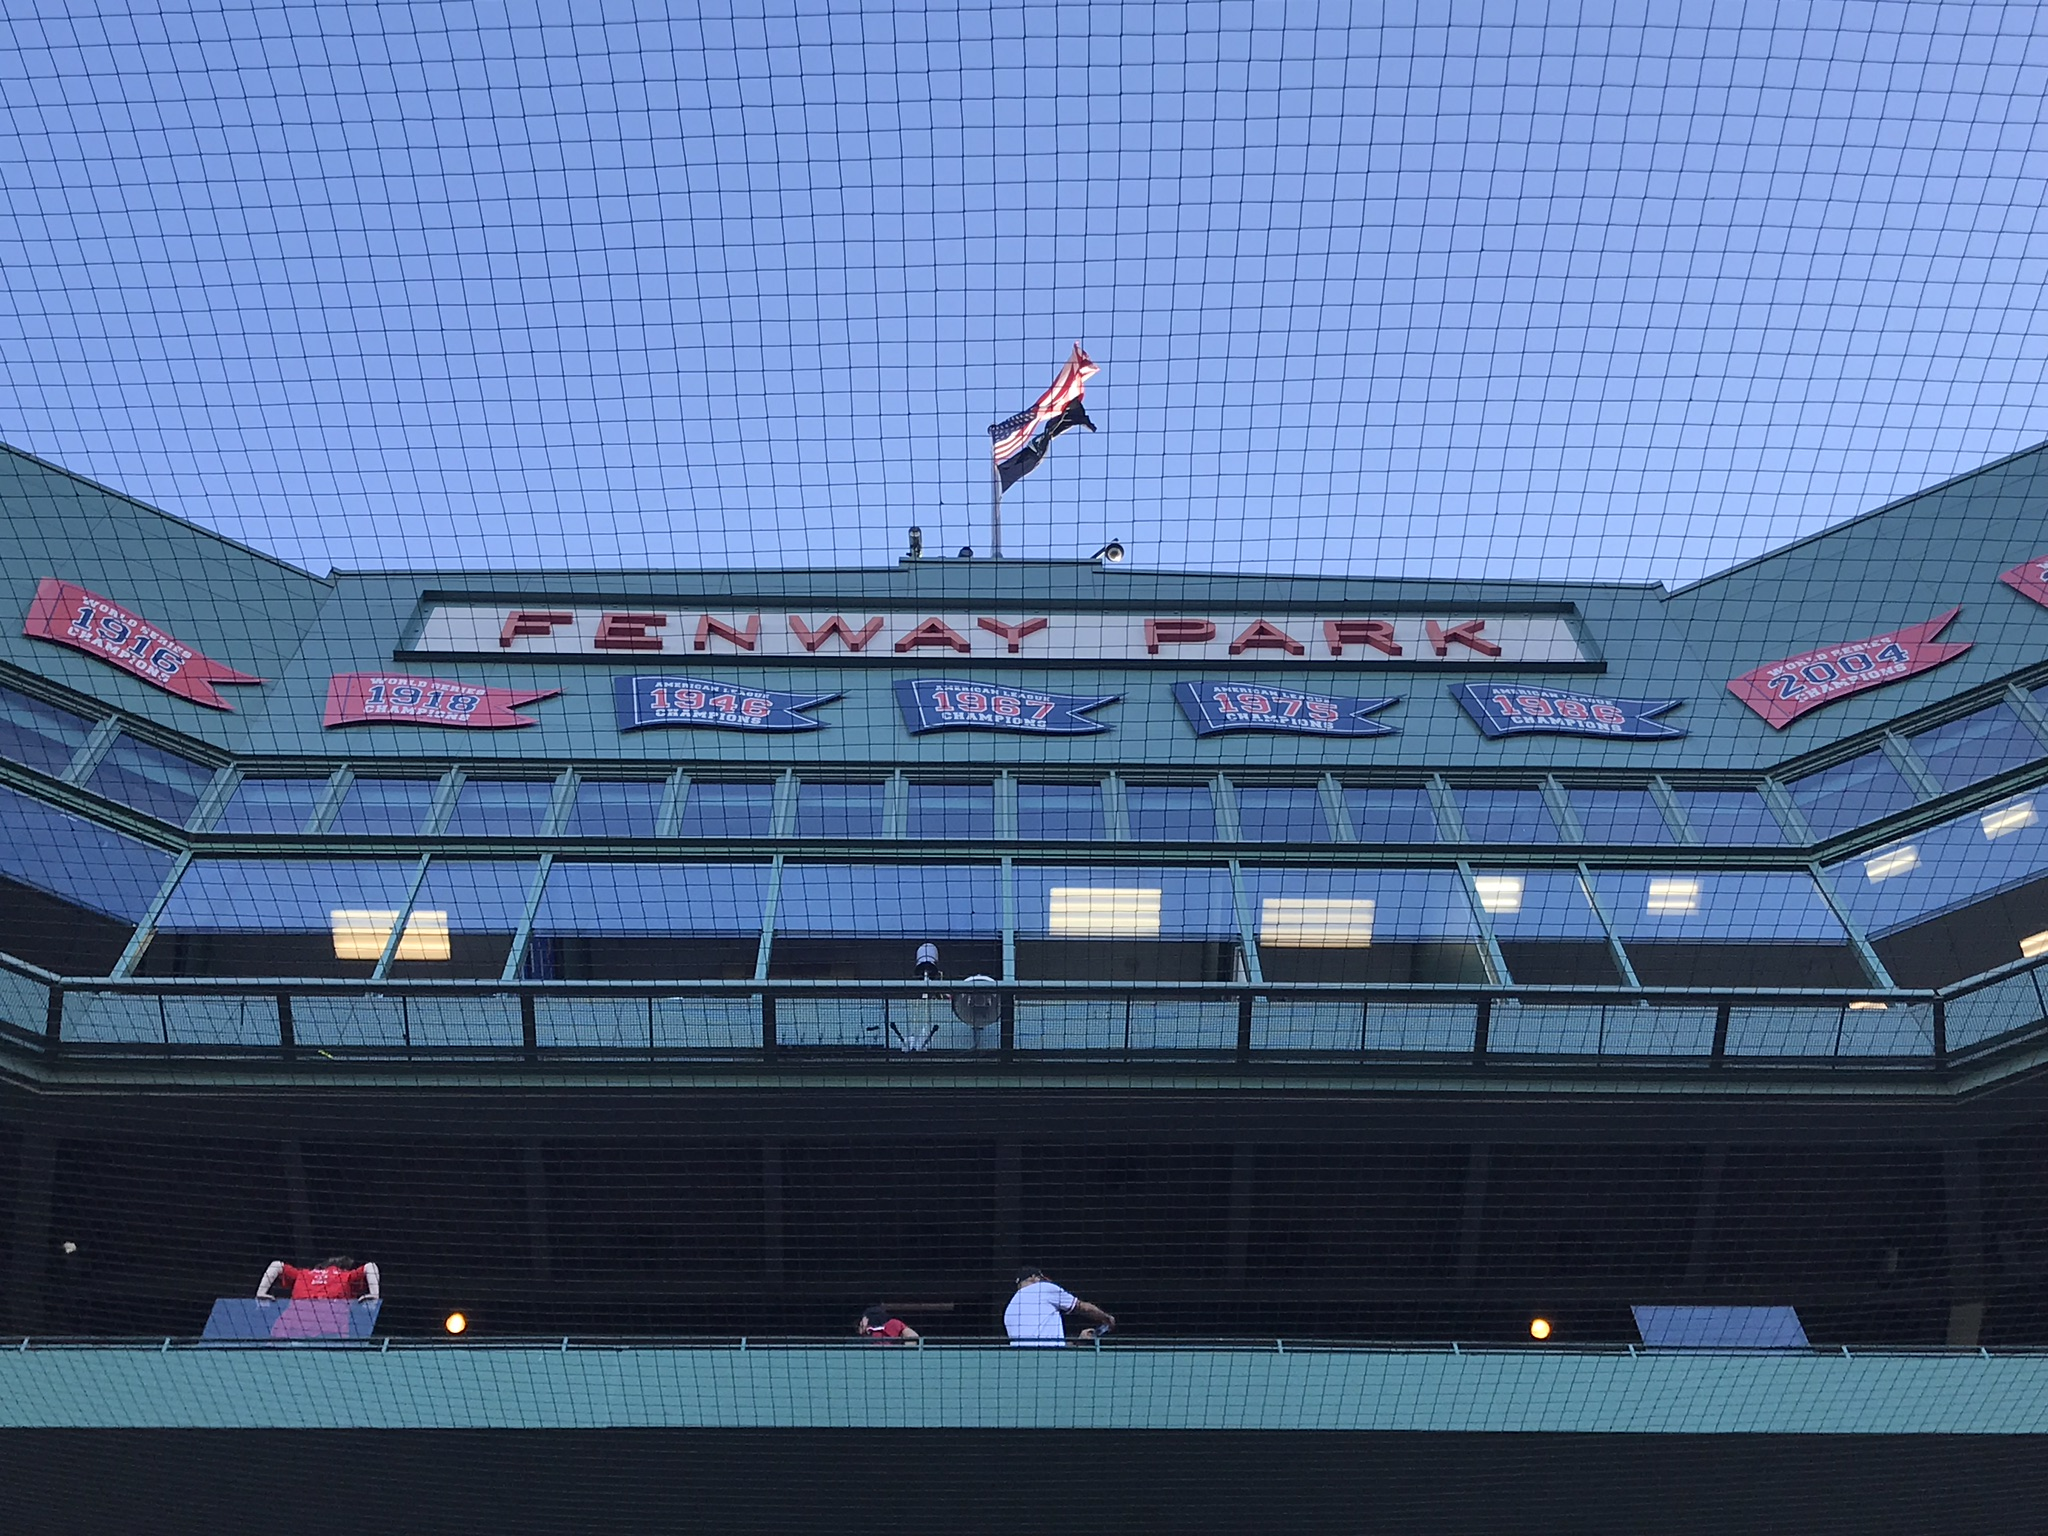 Red Sox Fenway Park